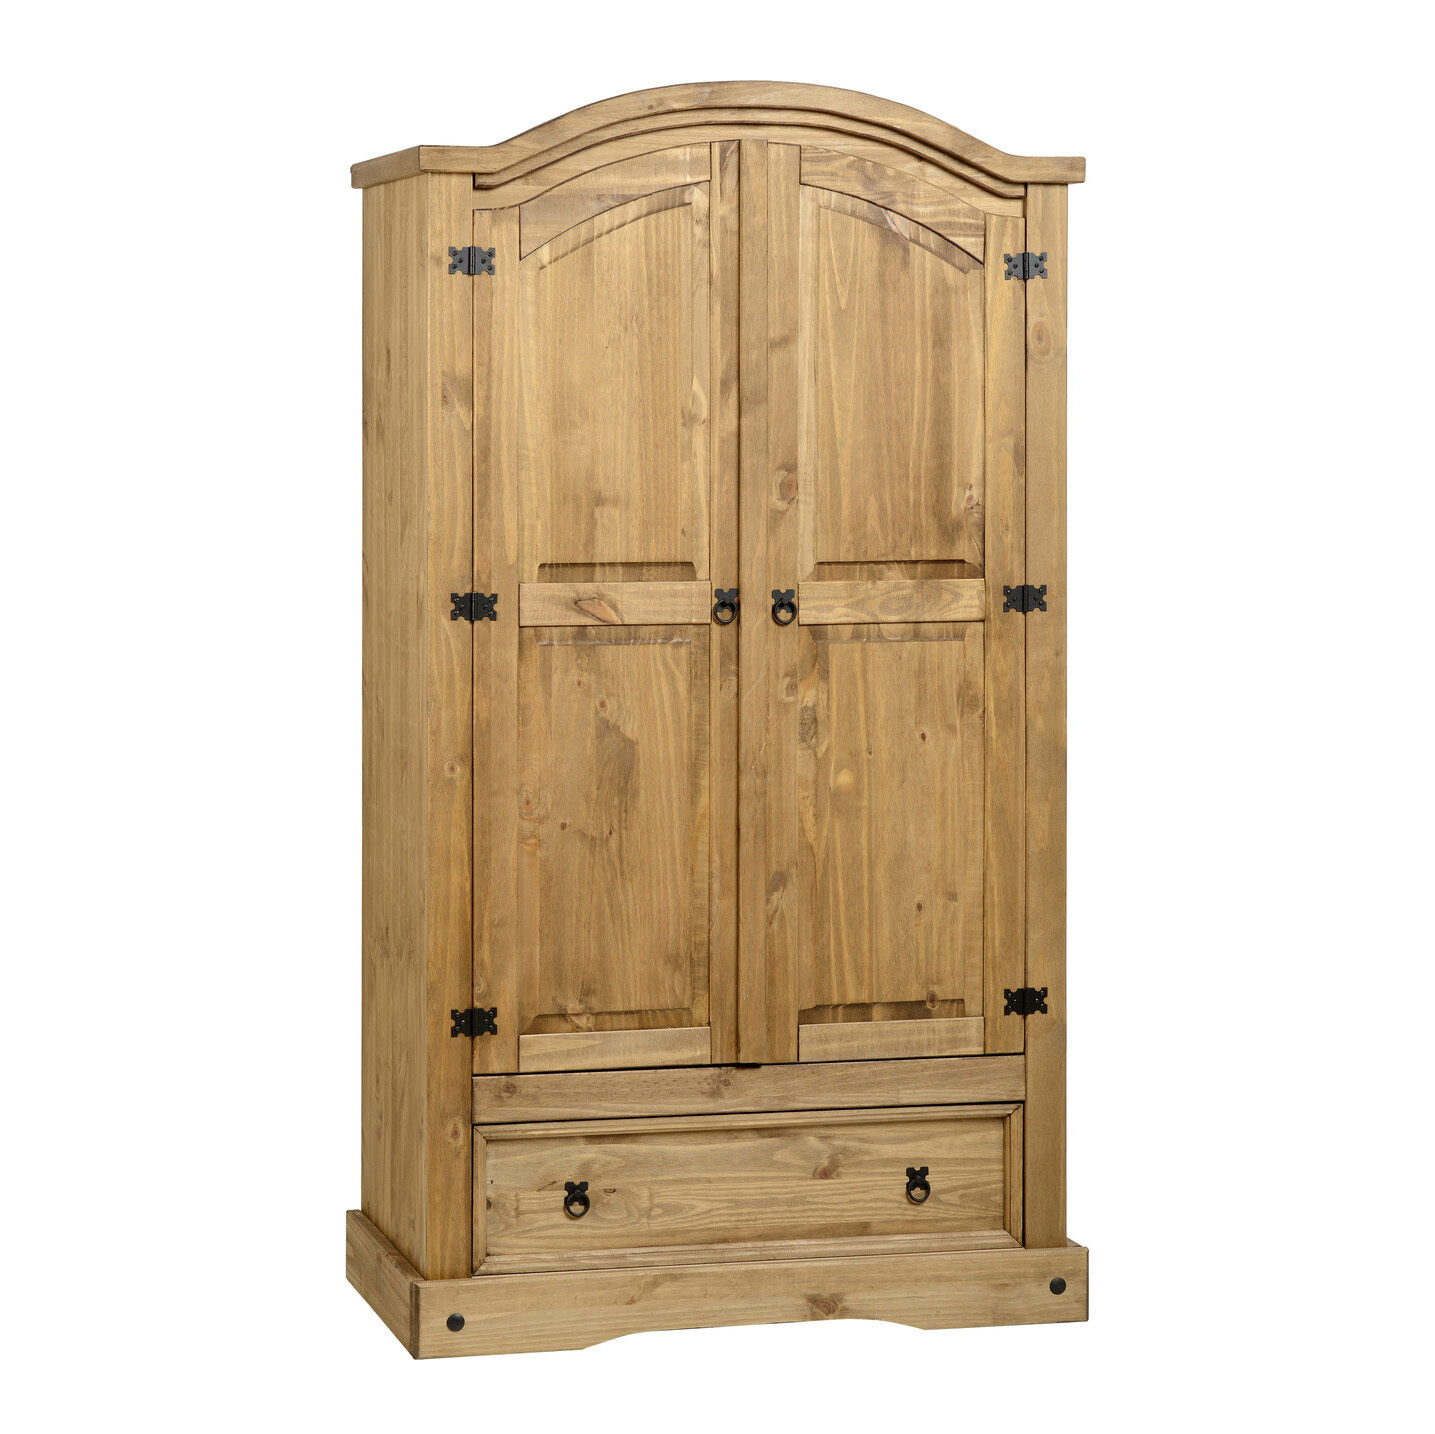 corona 2 t r 1 schublade kleiderschrank beunruhigt gewachst kiefer ebay. Black Bedroom Furniture Sets. Home Design Ideas